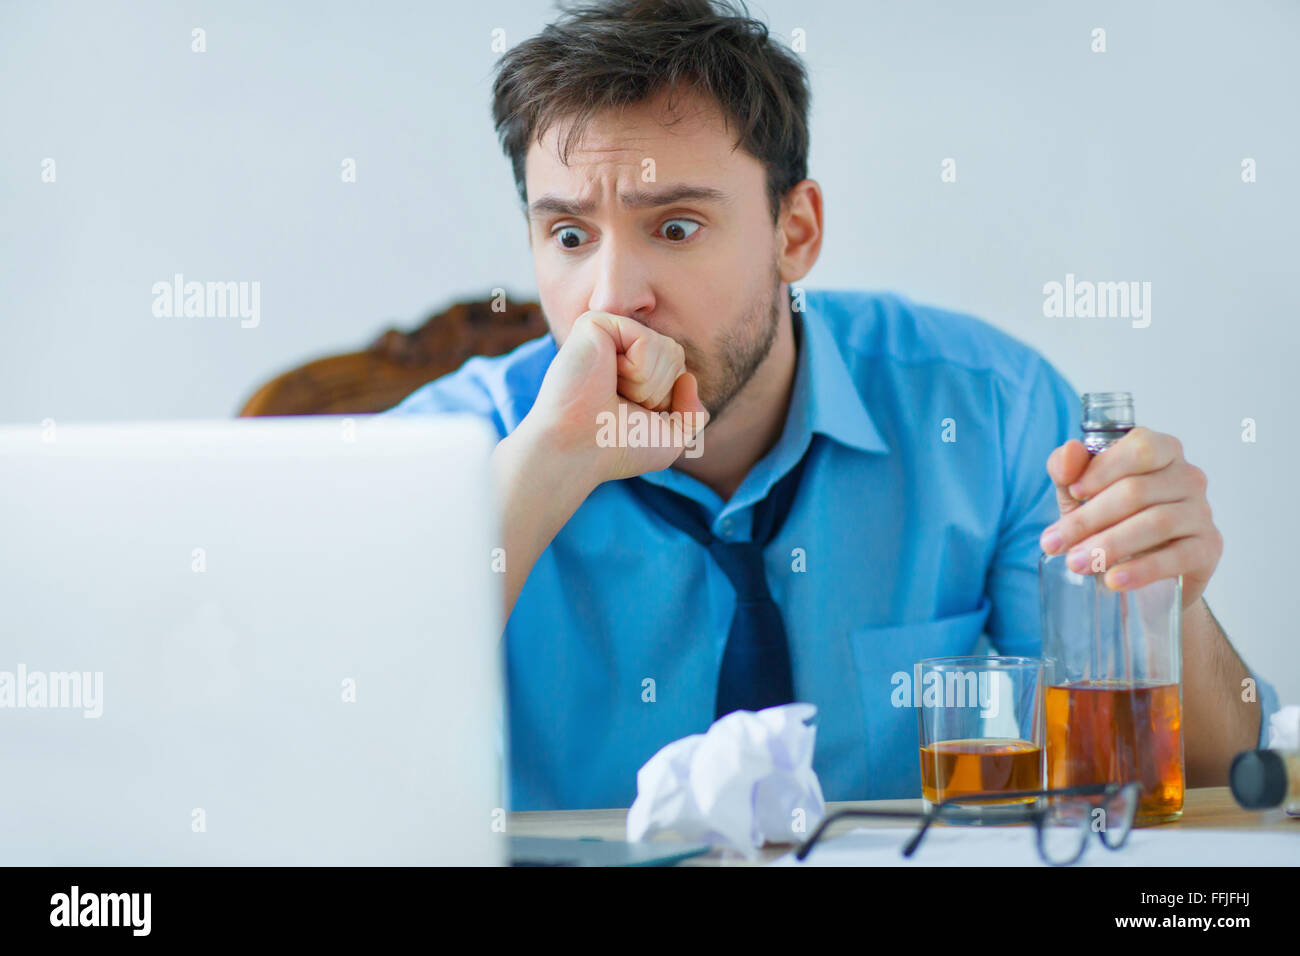 Drunk man drinking alcohol while working - Stock Image